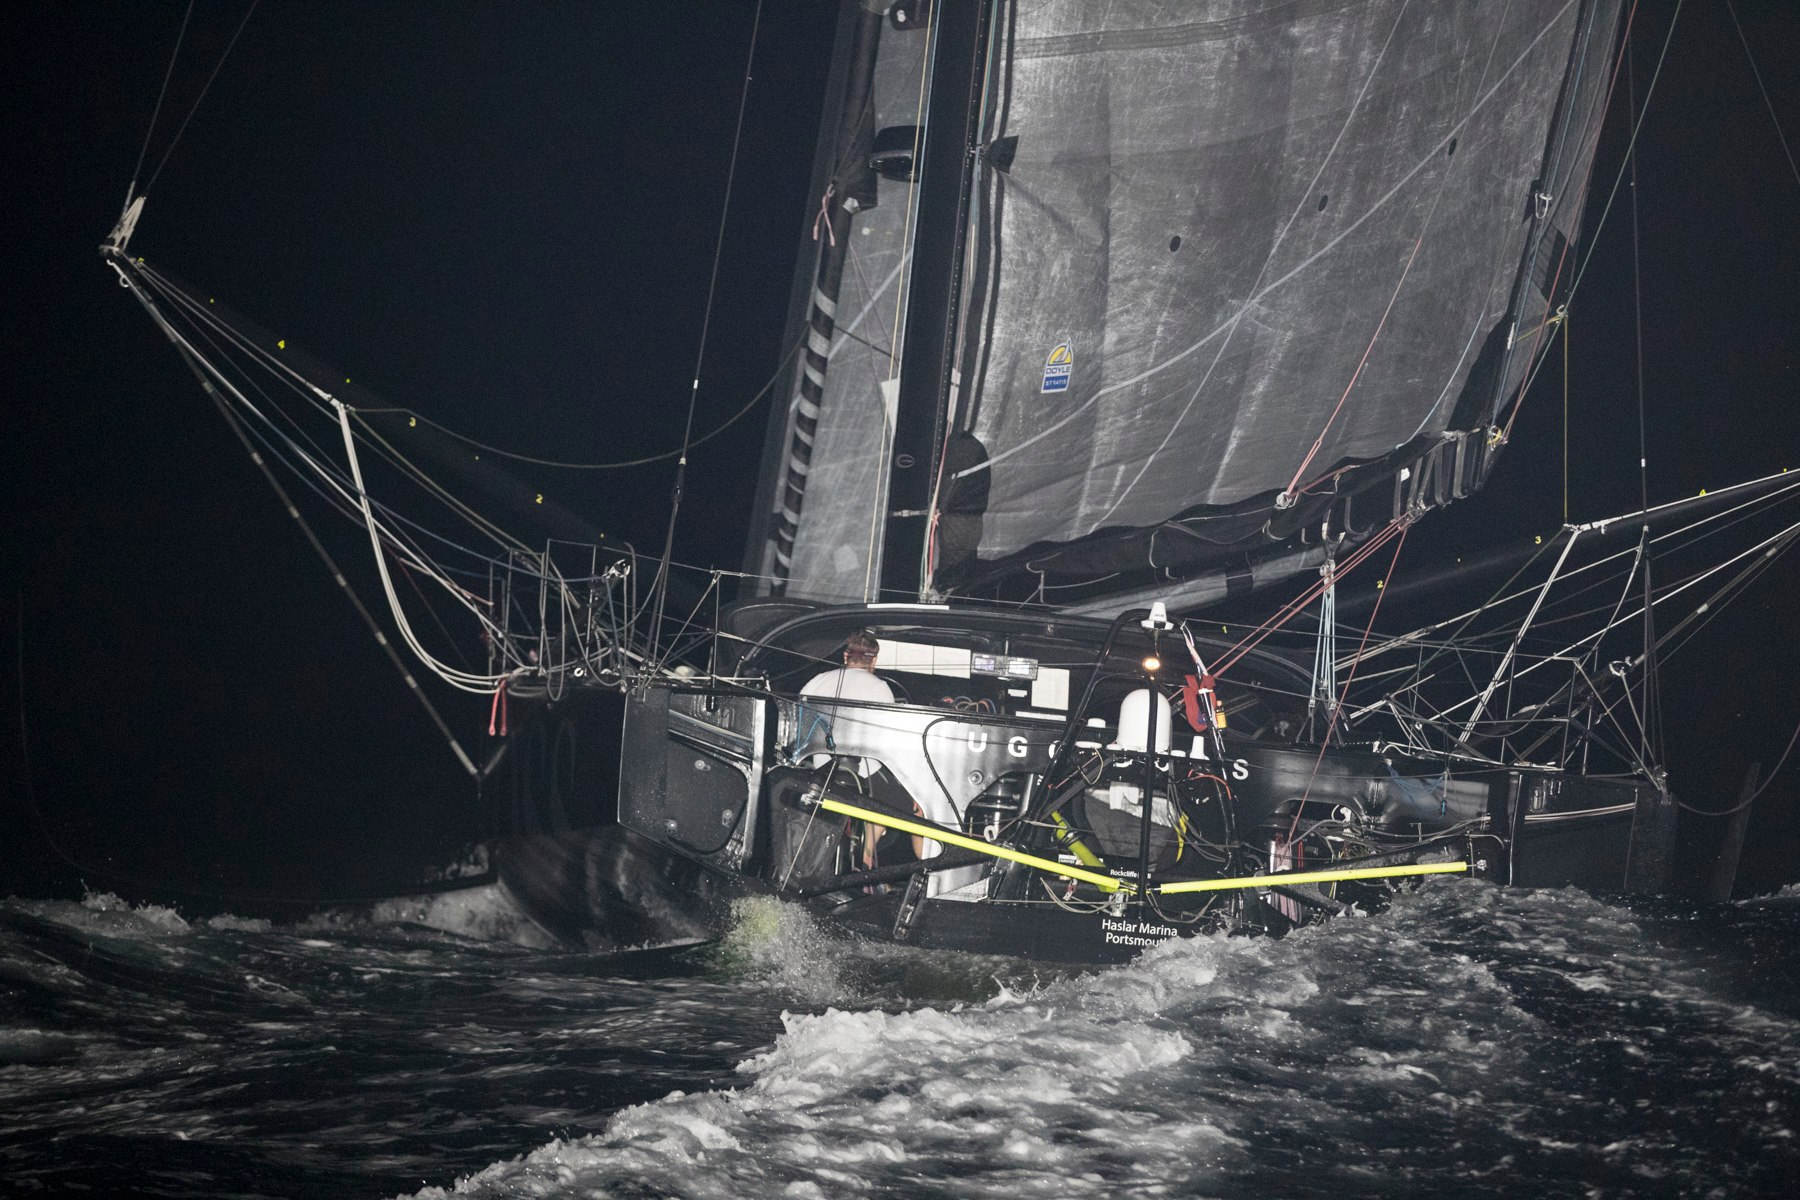 Route du Rhum Alex Thomson runs aground in Guadeloupe